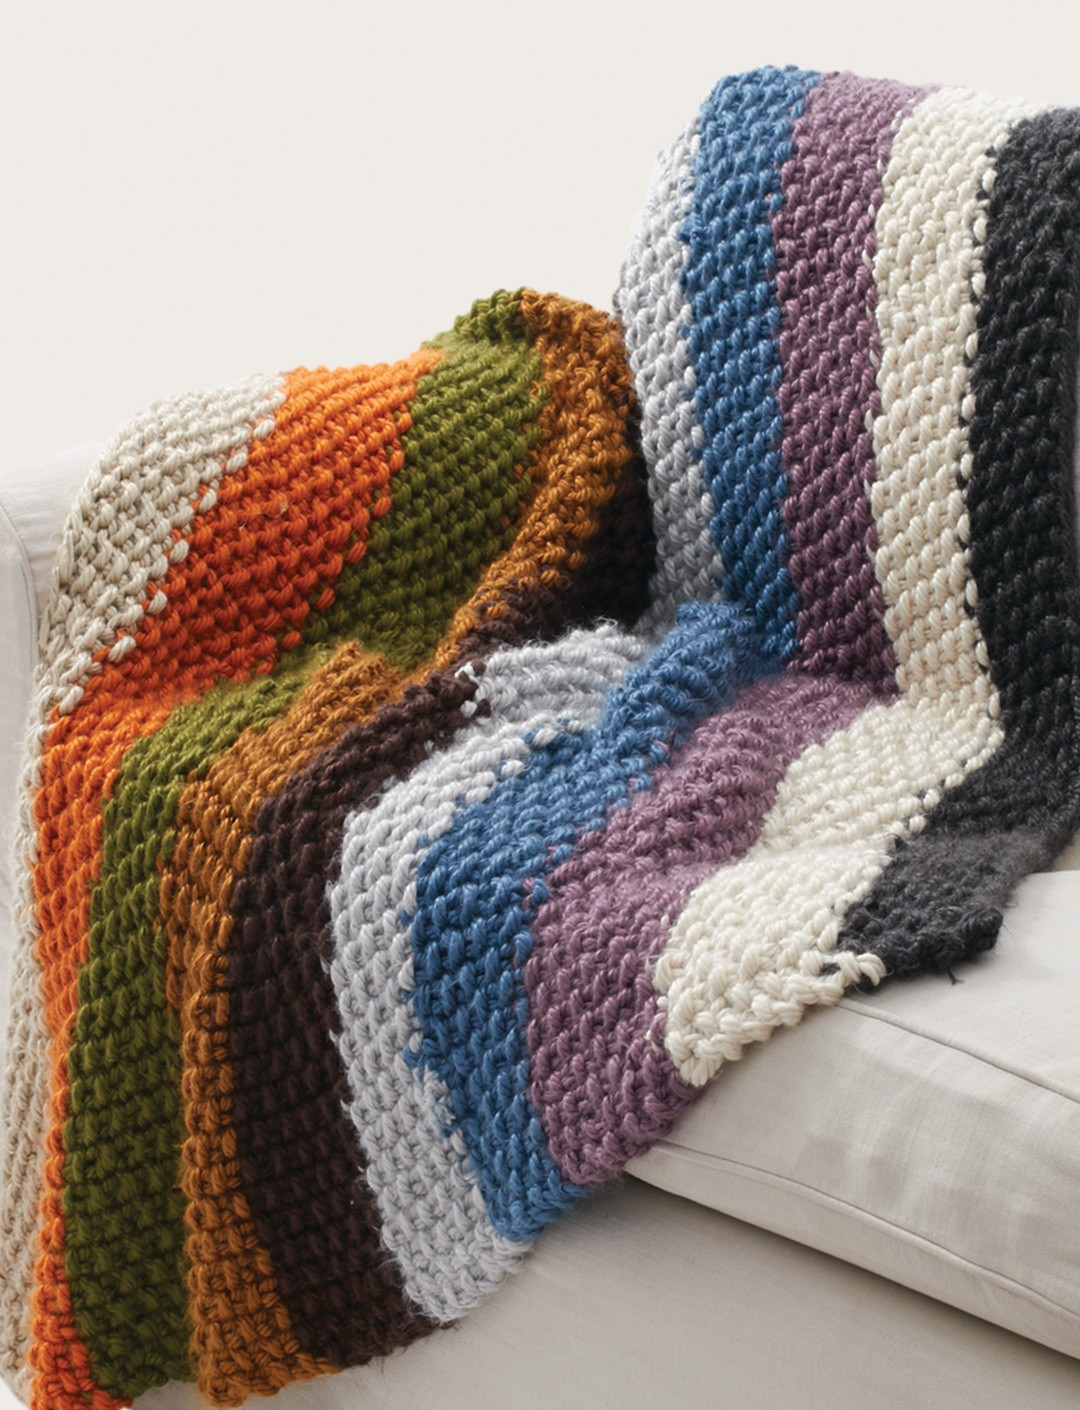 Bernat Seed Stitch Blanket, Knit Pattern Yarnspirations